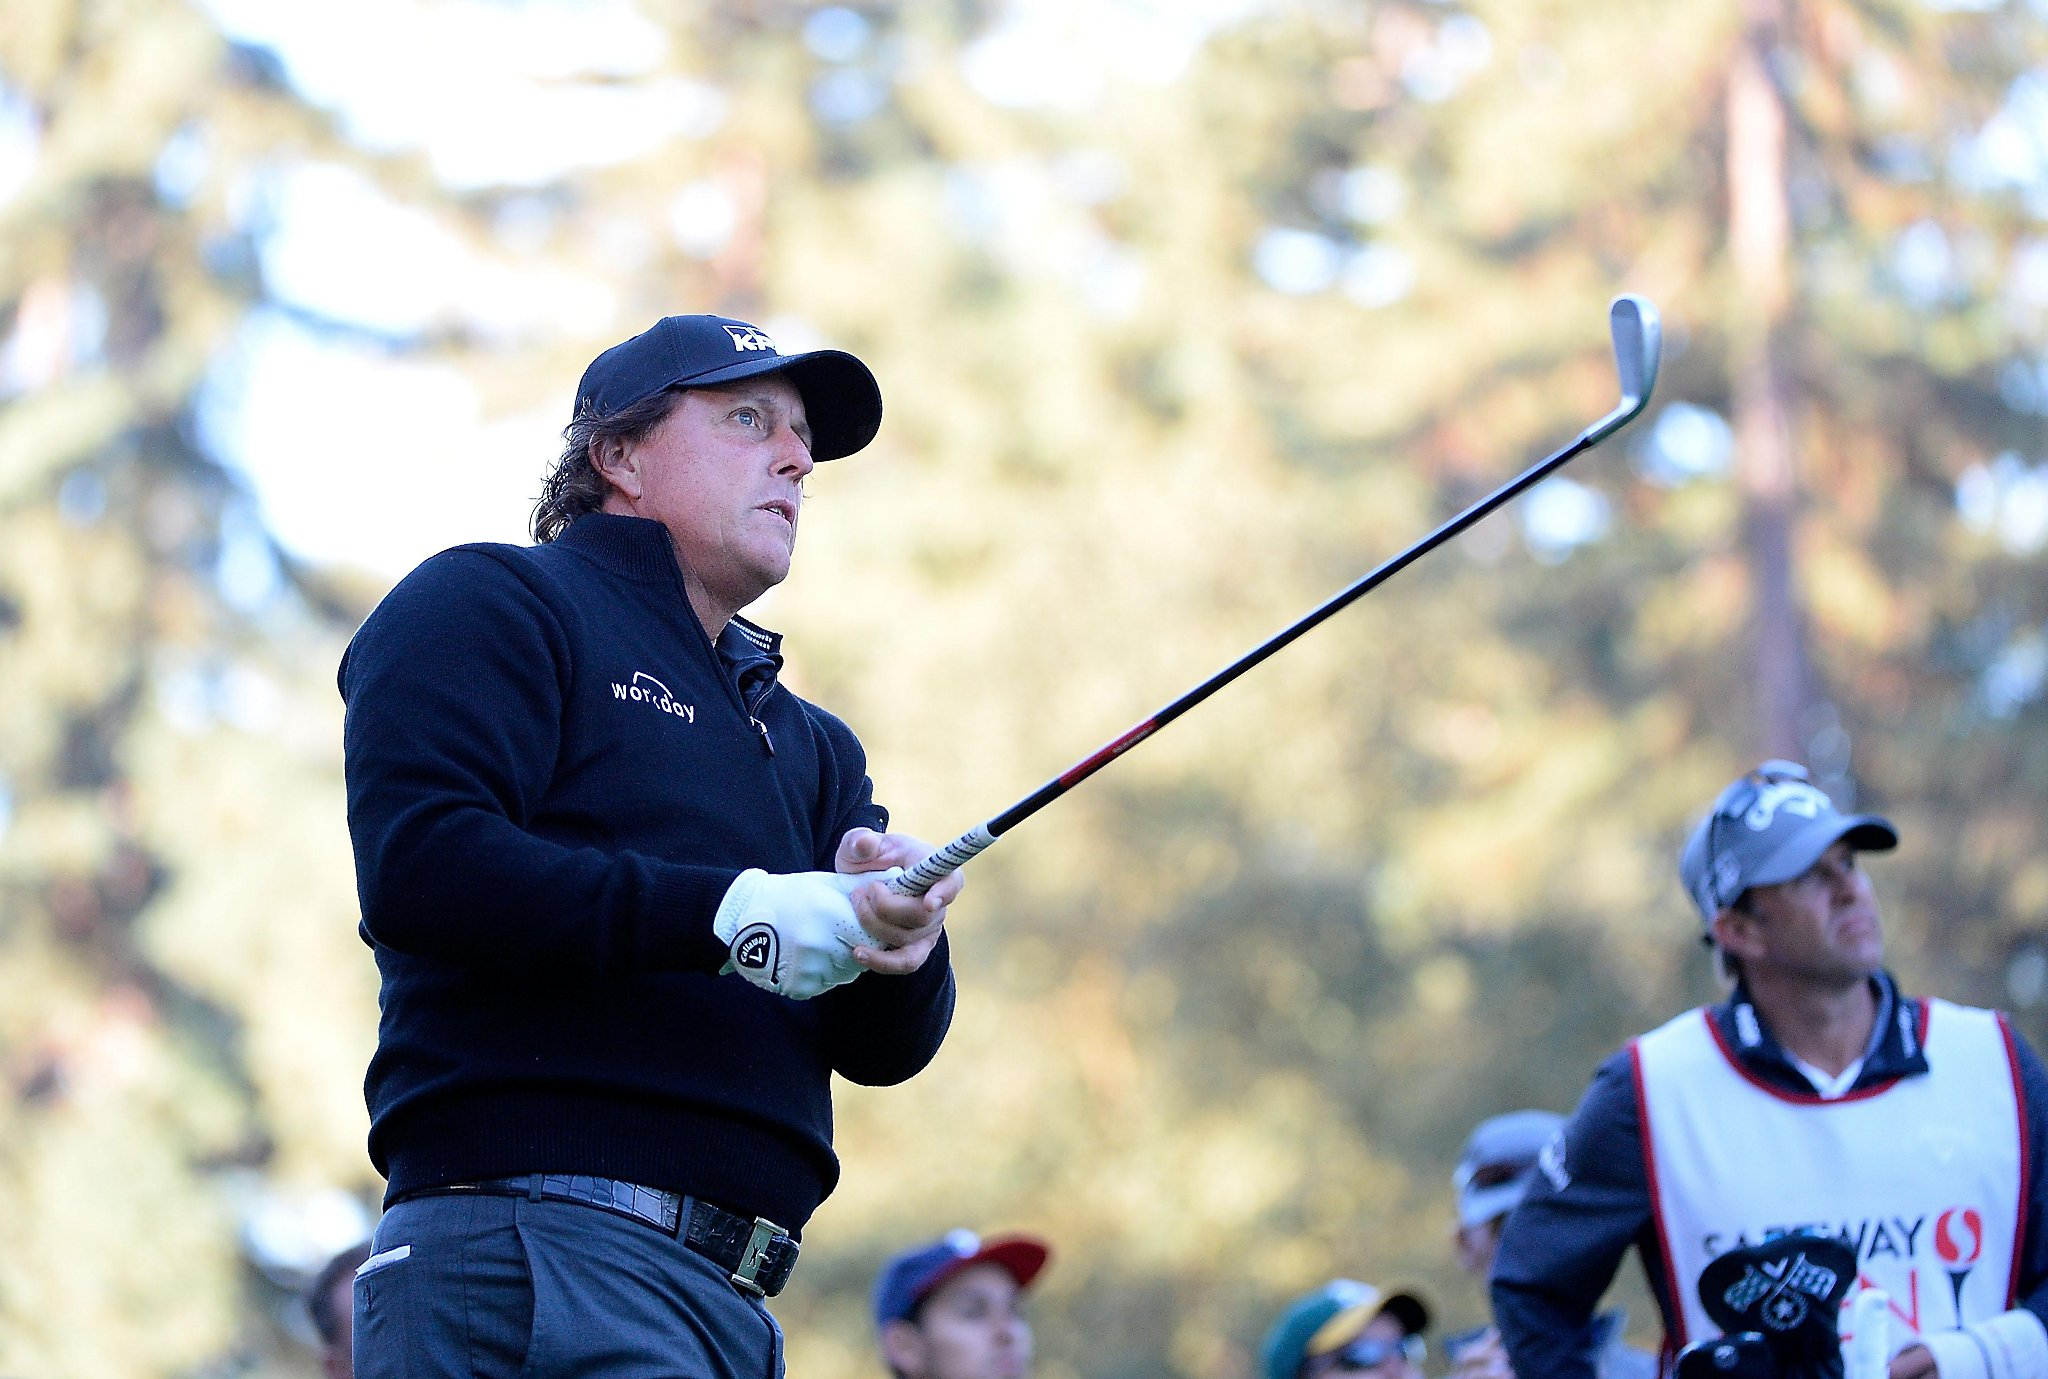 Phil Mickelson plans to scale back his schedule in 2019 ...